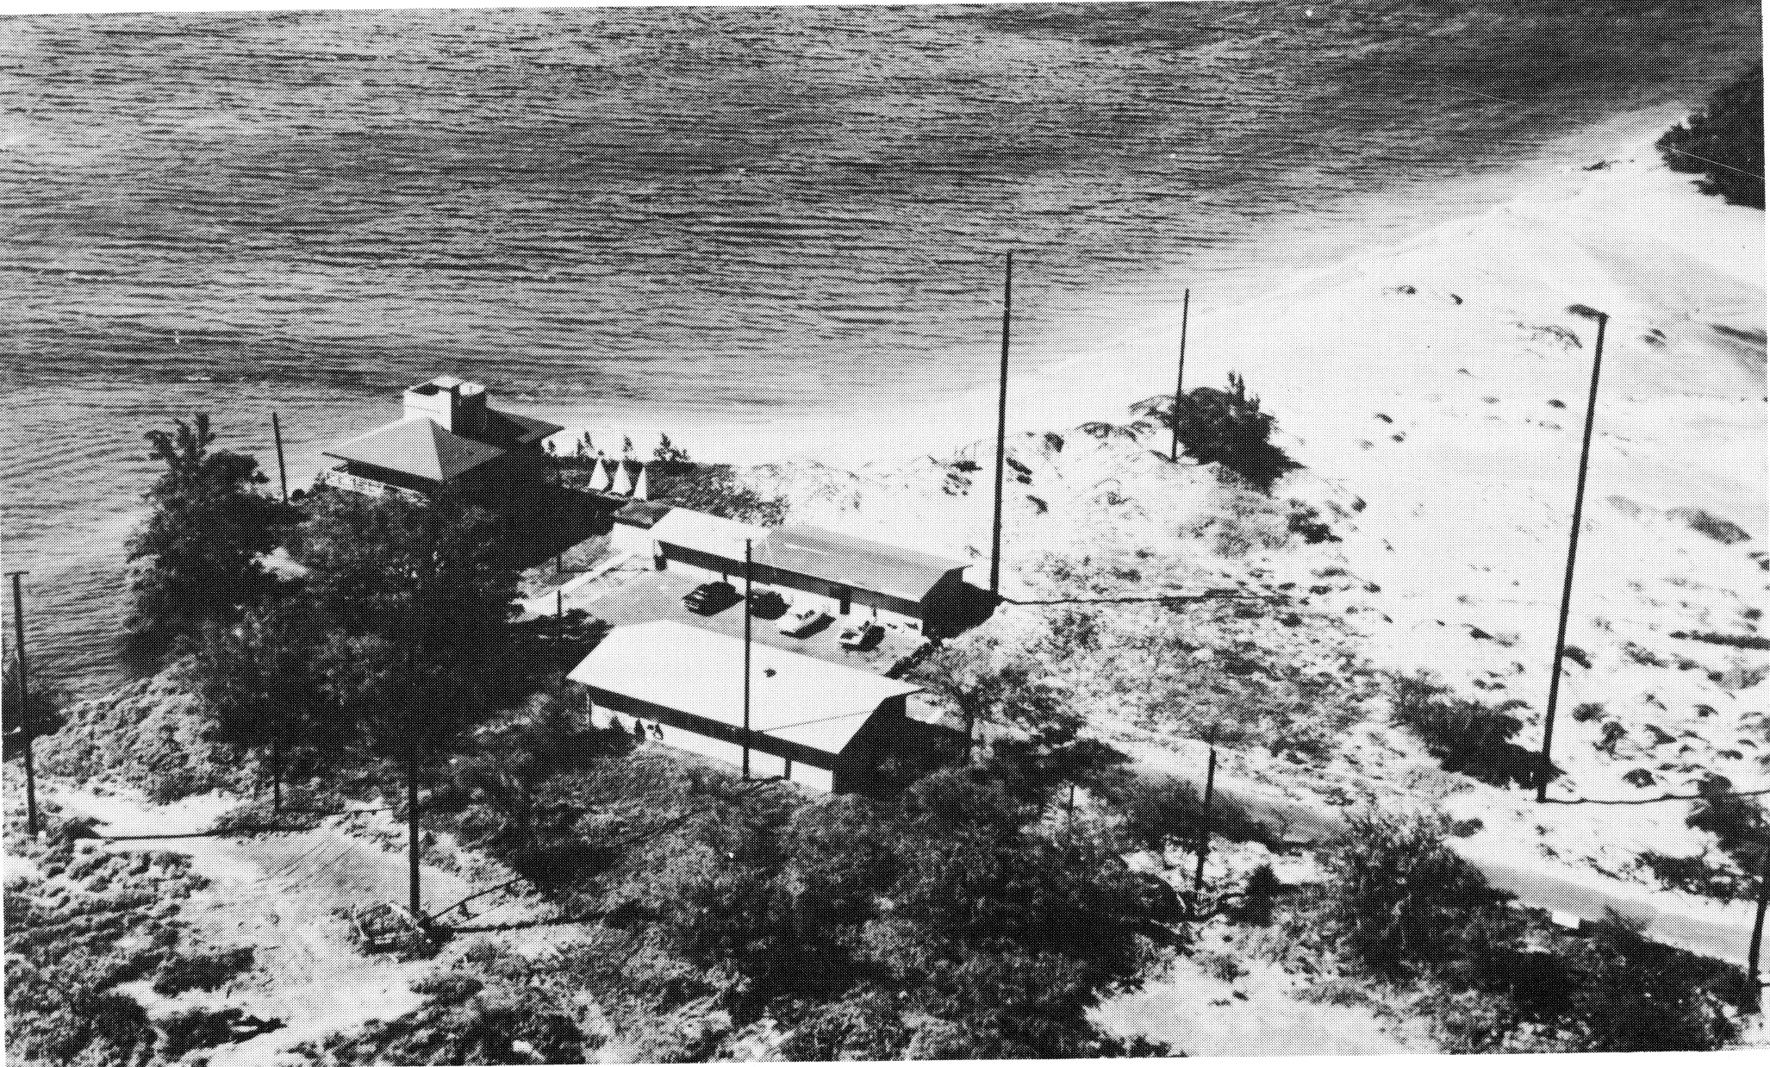 black and white image of the WWVH radio station on the very edge of the Maui shoreline